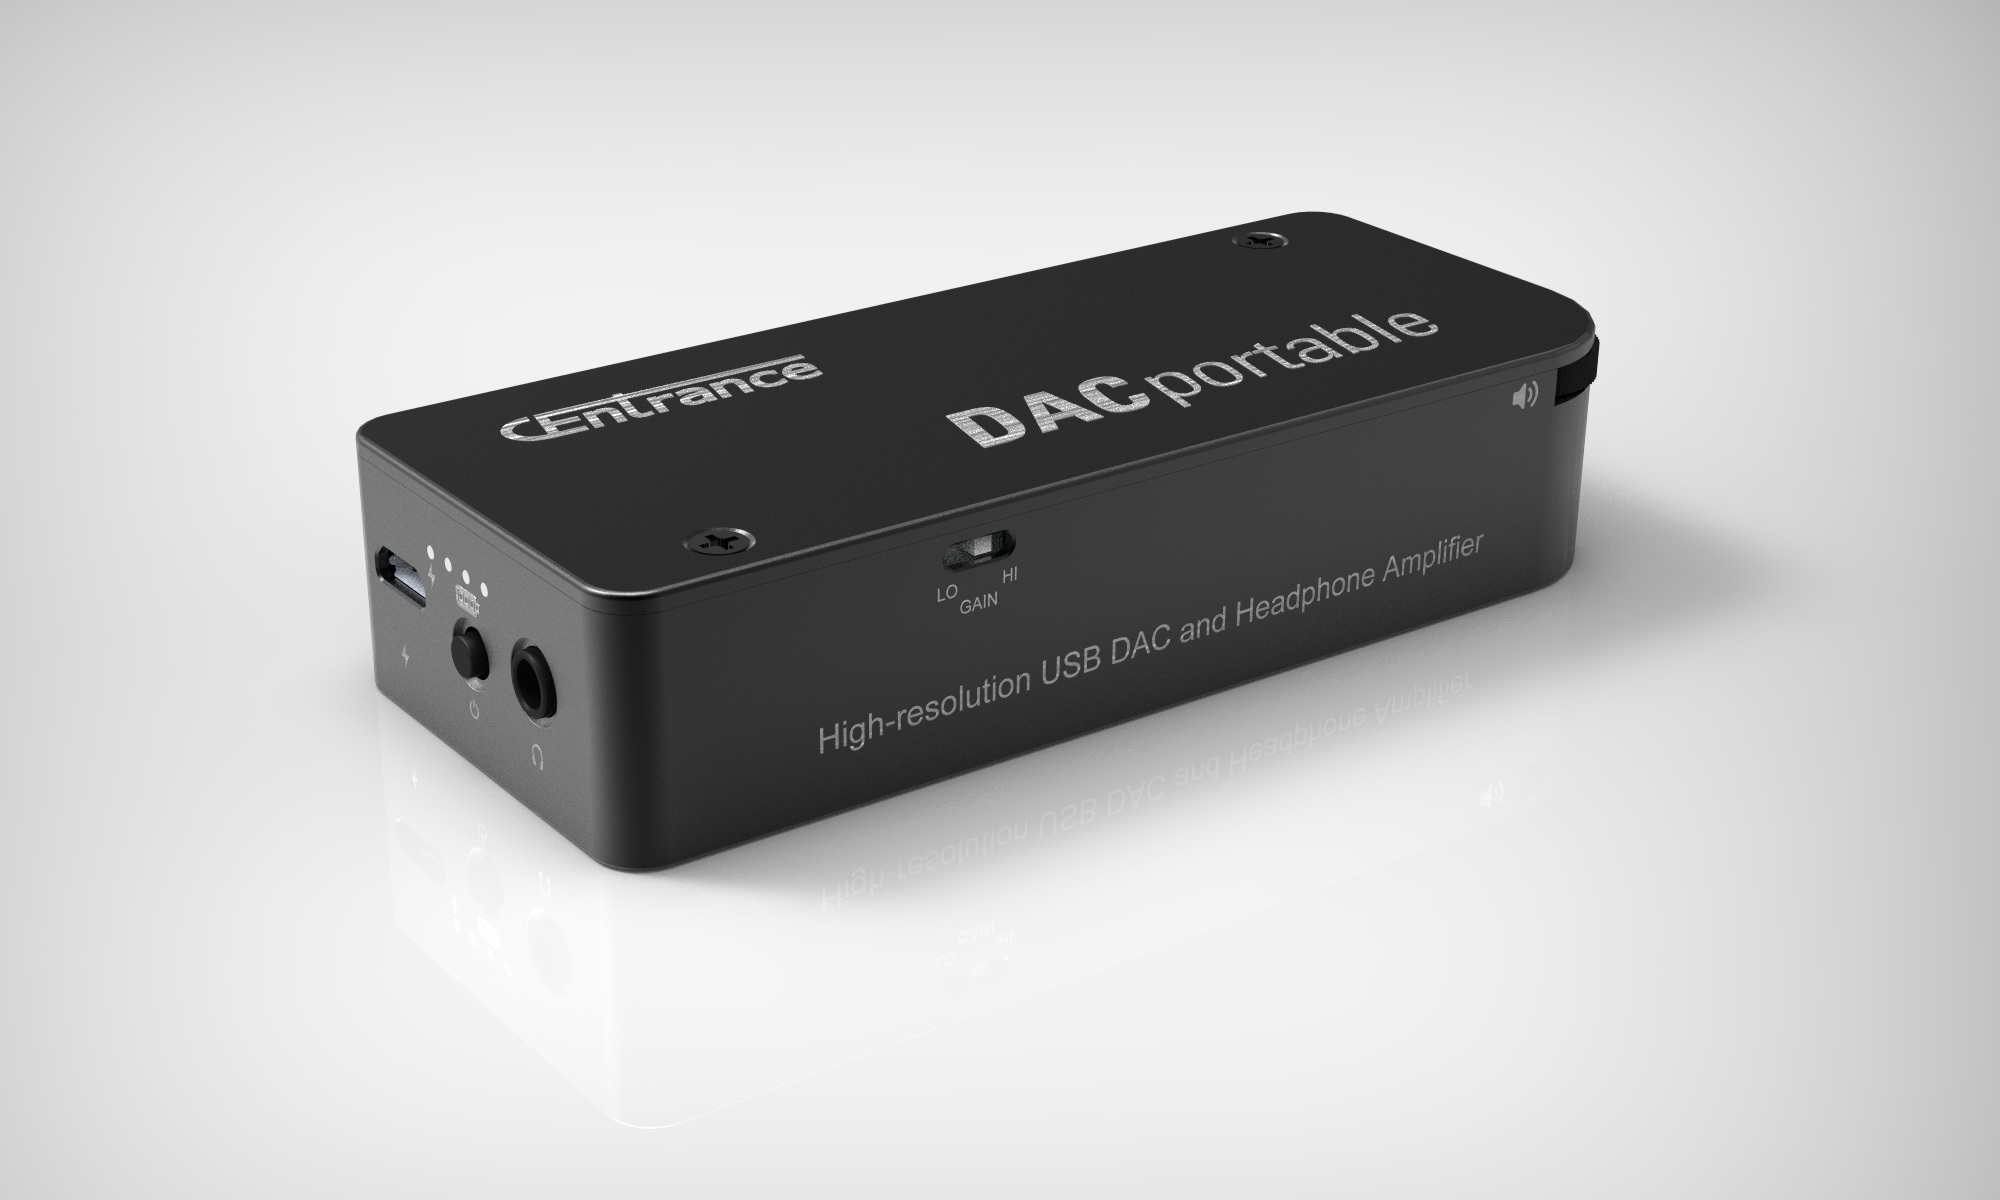 DACportable - Portable DAC/Amp for iPhone/iPad, computers